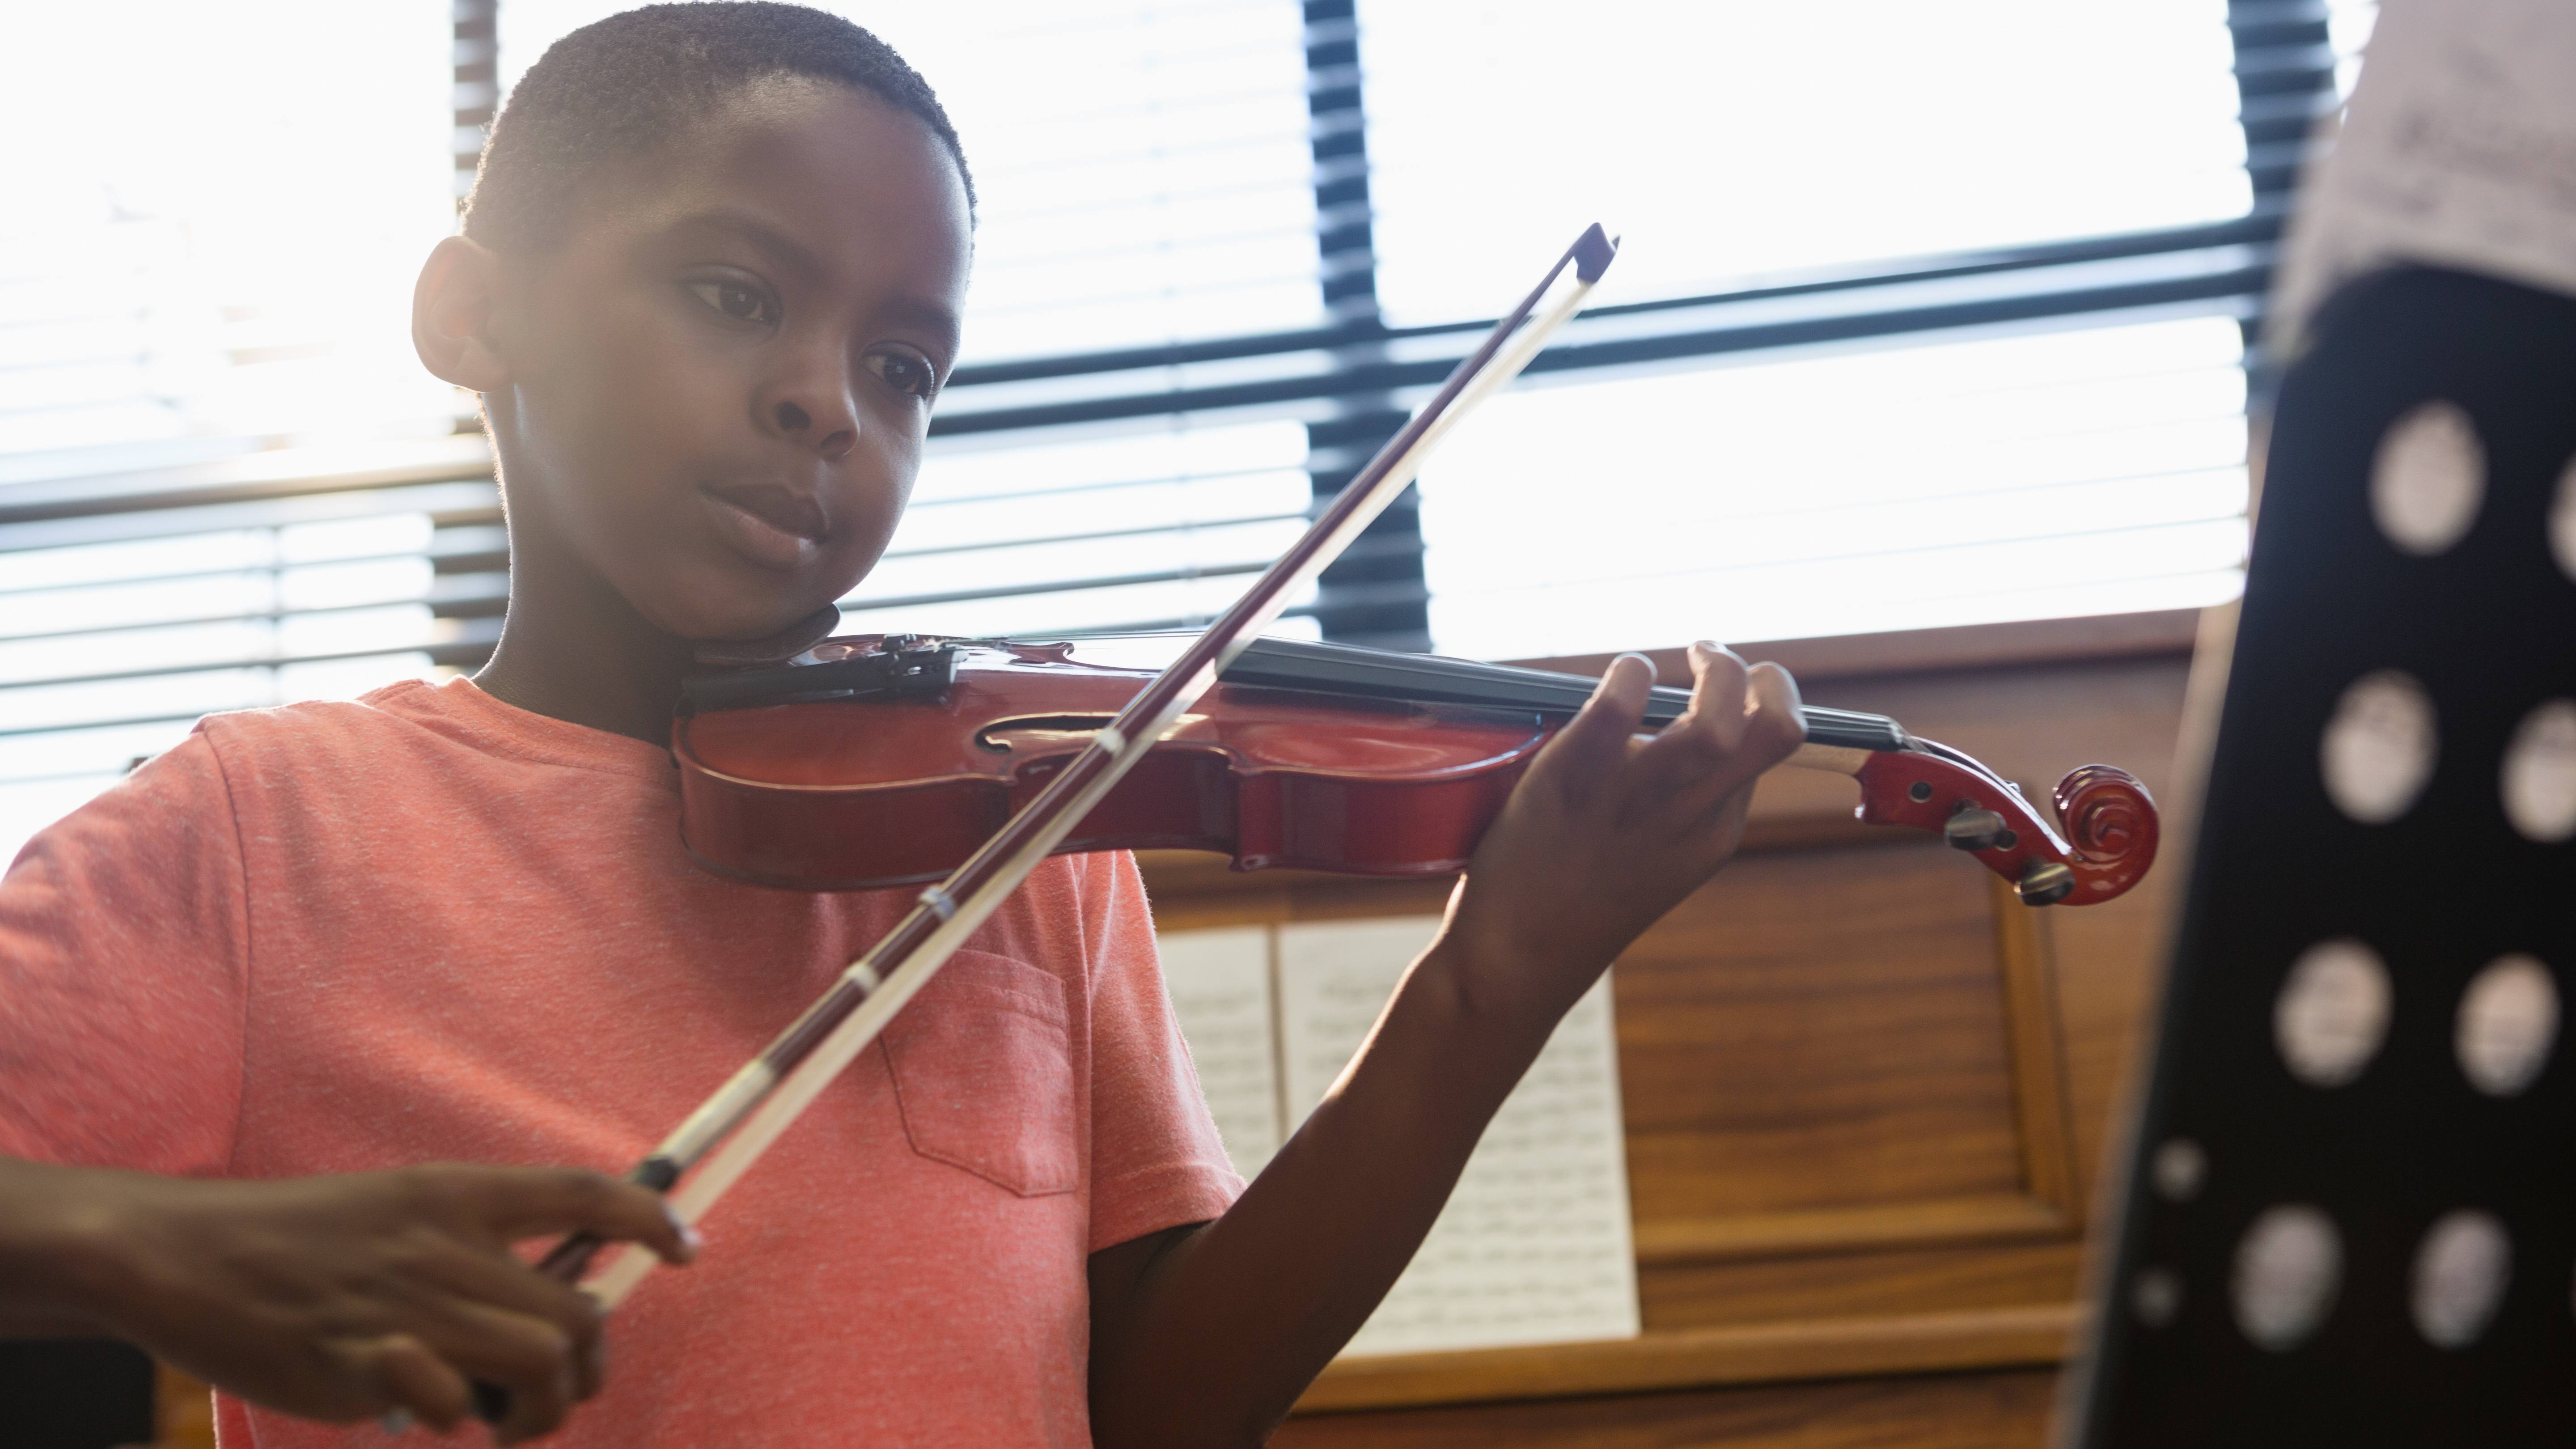 a young Black boy in an orange shirt playing a violin, with sheets of music on an instrument stand